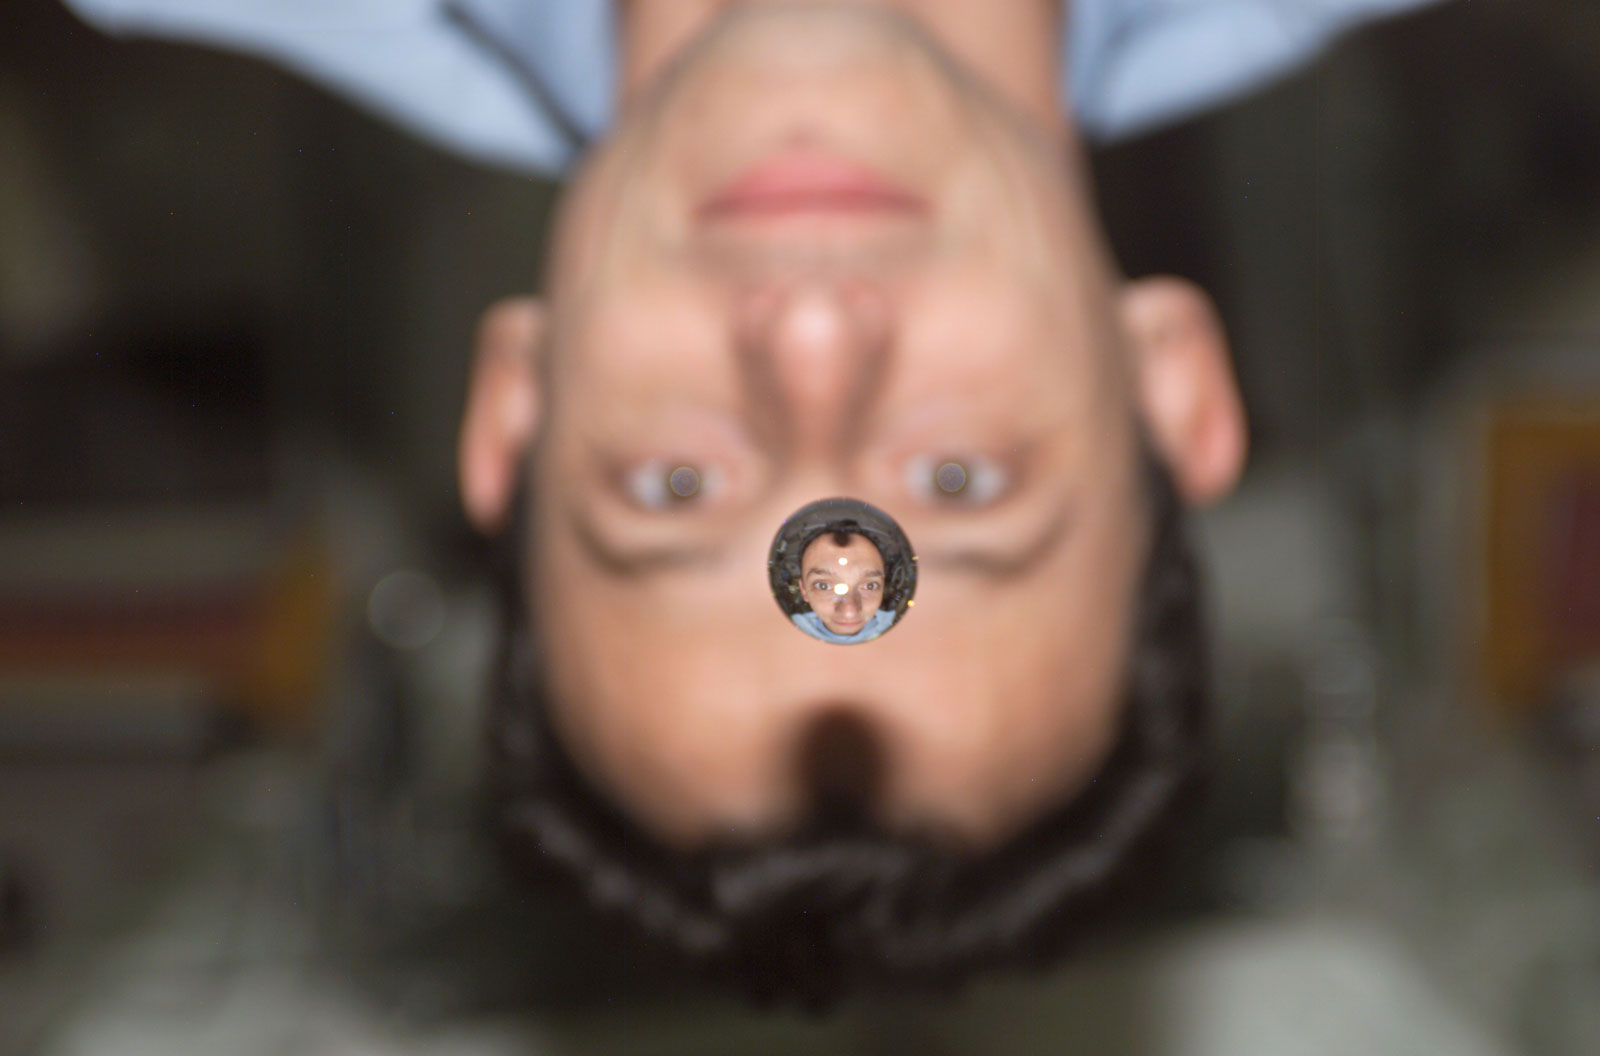 Pedro Duques watches a water bubble float between him and the camera, showing his image refracted